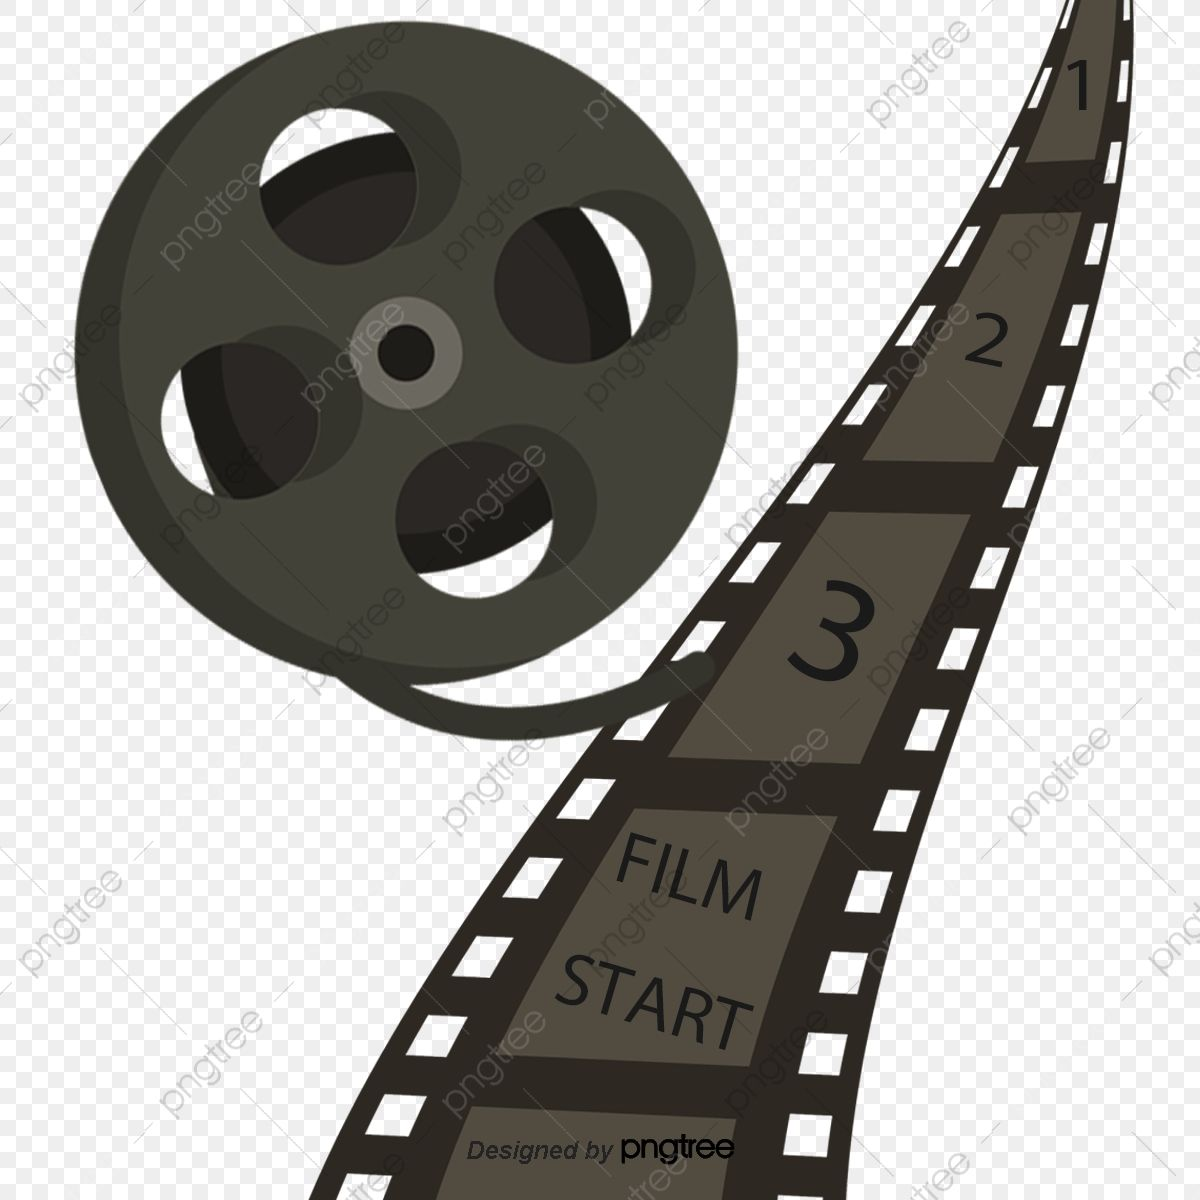 Film Reel Old Movies Nostalgia Film Png Transparent Image And Clipart For Free Download Film Reels Old Movies Film Stock